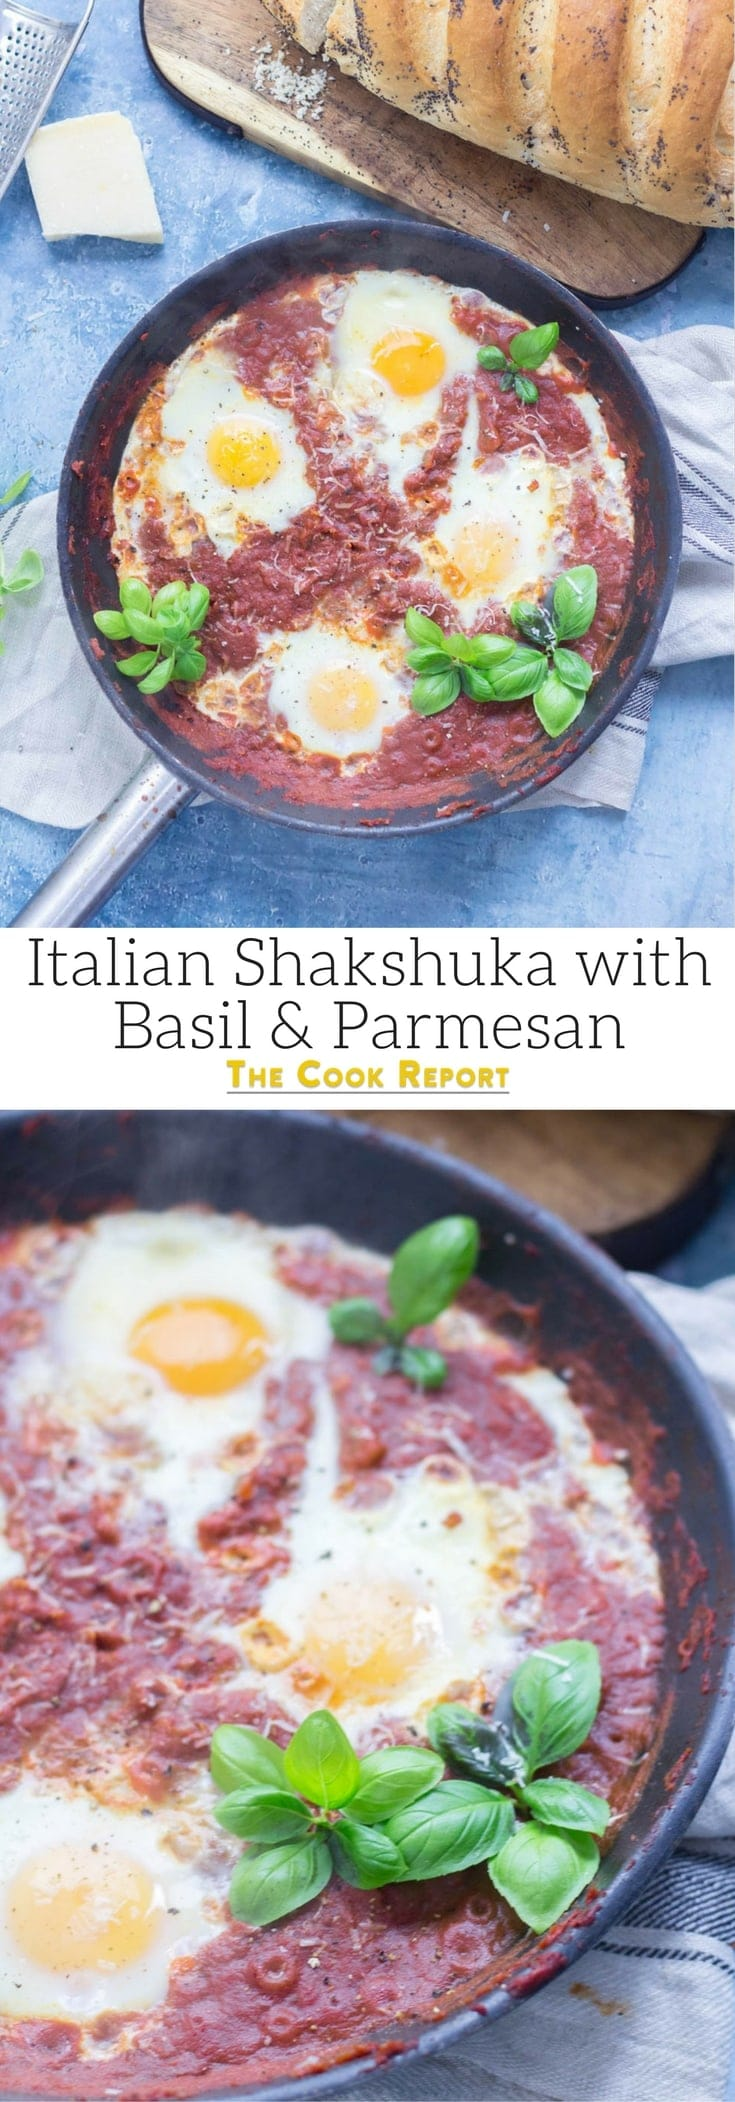 Serve up a hearty breakfast with this Italian shakshuka made with a delicious oregano tomato sauce and finished with a sprinkling of parmesan. #shakshuka #recipe #breakfast #brunch #italianfood